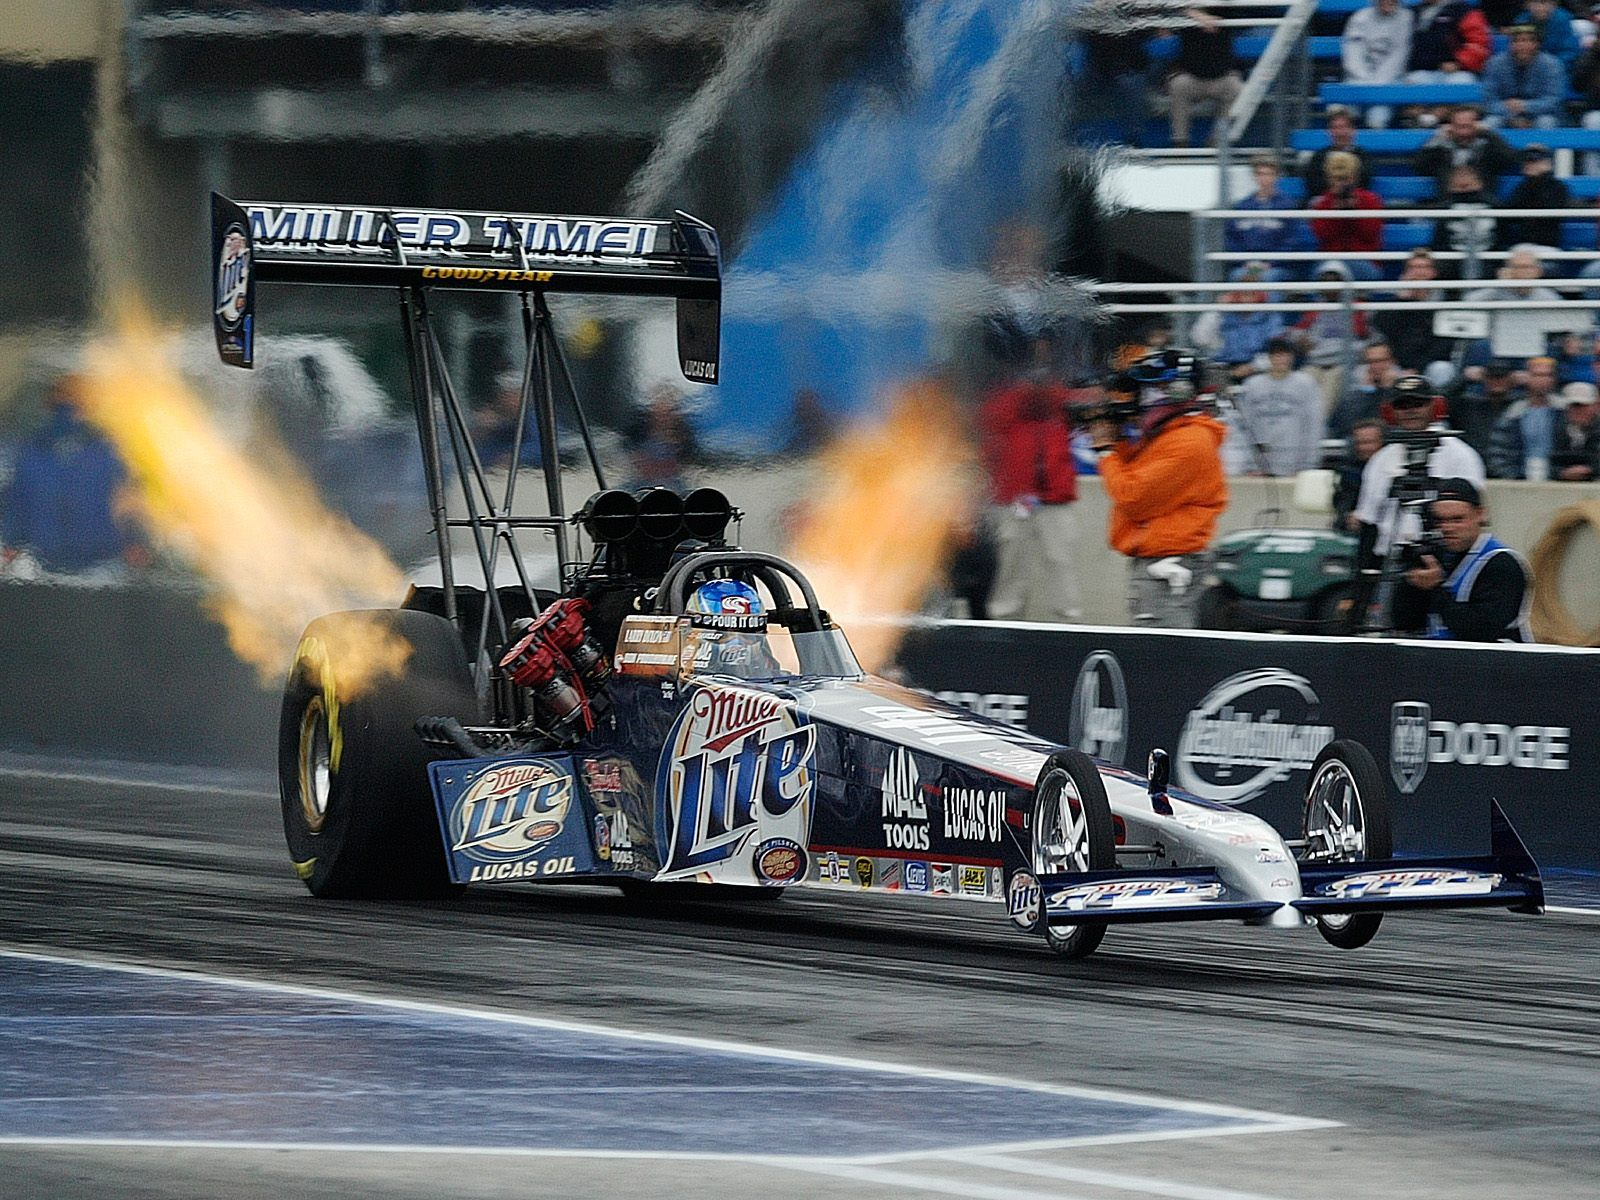 Nhra top fuel dragster accelerates from 0 to 100 mph in for Wallpaper drag race motor